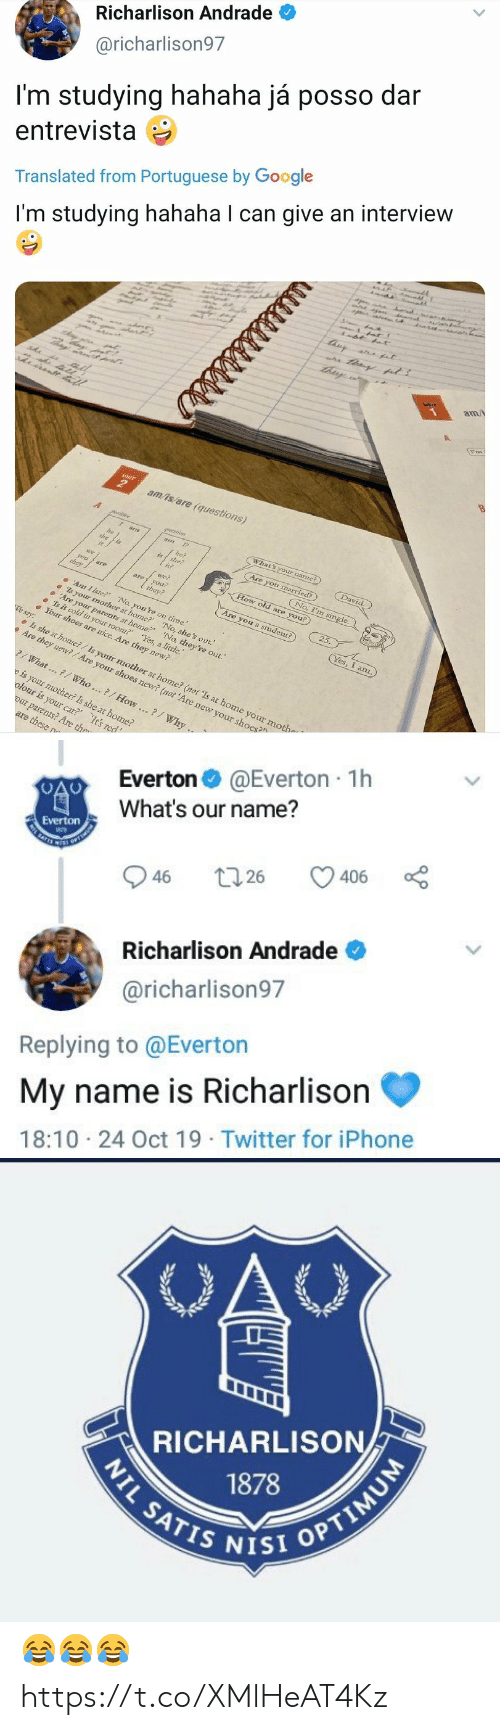 "Everton, Google, and Iphone: Richarlison Andrade  @richarlison97  I'm studying hahaha já posso dar  entrevista  Translated from Portuguese by Google  r  I'm studying hahaha I can give an interview  tisy  a at  am/  UNIT  am/is/are (questions)  A  What's your namme?)  am  David.  he?  she?  Are you married?)  is  No, I'm single  we  How old are you?  nai  aoyou  they?  they  25.  Are you a student?)  Ar I late? No, you're on time.  s your mother at home? No, she's out.  Are yoar parents at home?' 'No, they're out.""  Is it cold in your room? Yes, a little.  Your shoes are mice. Are they new?  Yes, I anz.  We say:  Is she at home?/Is your mother at home? (not 'Is at home your mothe  Are they new?/Are your shoes new? (not 'Are new your shoes?  What...7/ Who..?/How..?/Why ..  e is your mother? Is she at home?  olour is your car? It's red  our parents? Are the  are these n  है ह।   @Everton 1h  Everton  What's our name?  Everton  SATES  406  26  46  Richarlison Andrade  @richarlison97  Replying to @Everton  My name is Richarlison  18:10 24 Oct 19 Twitter for iPhone  >   OAC  RICHARLISON  1878  NIL SATIS NISI OPTIMUM 😂😂😂 https://t.co/XMlHeAT4Kz"